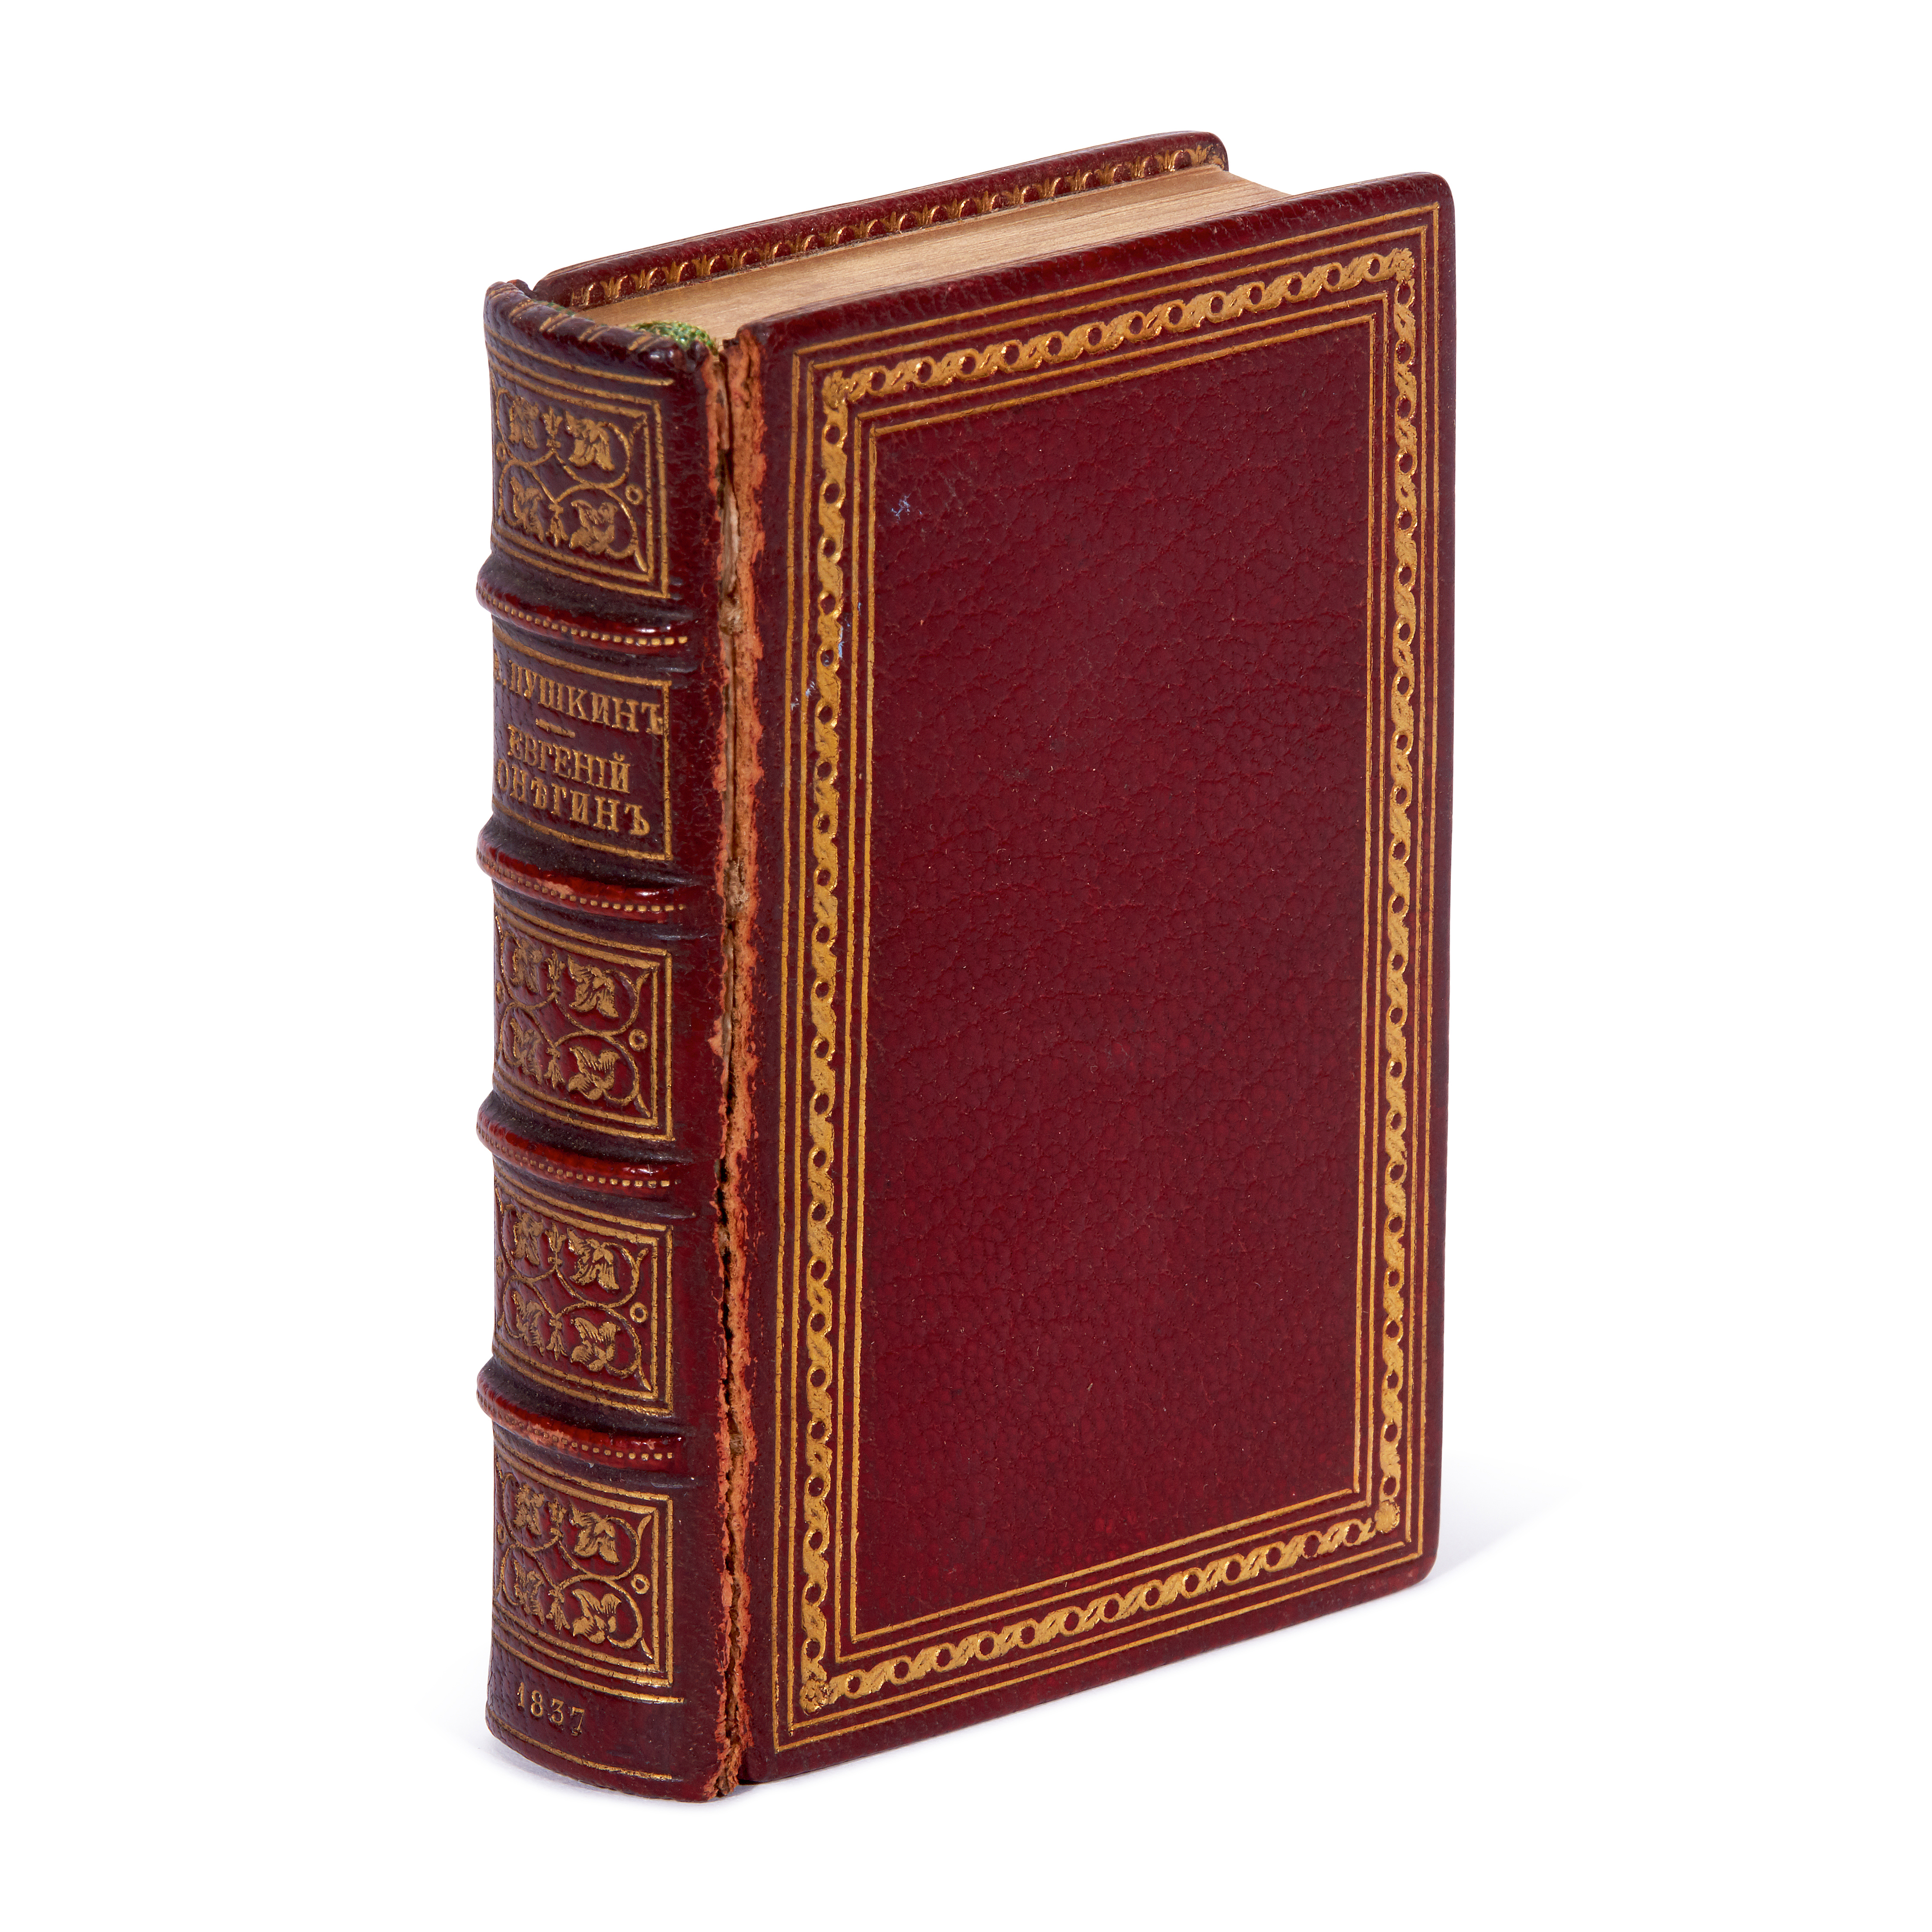 View full screen - View 1 of Lot 61. Pushkin, Eugene Onegin, St Petersburg, 1837, later red morocco gilt, miniature edition.